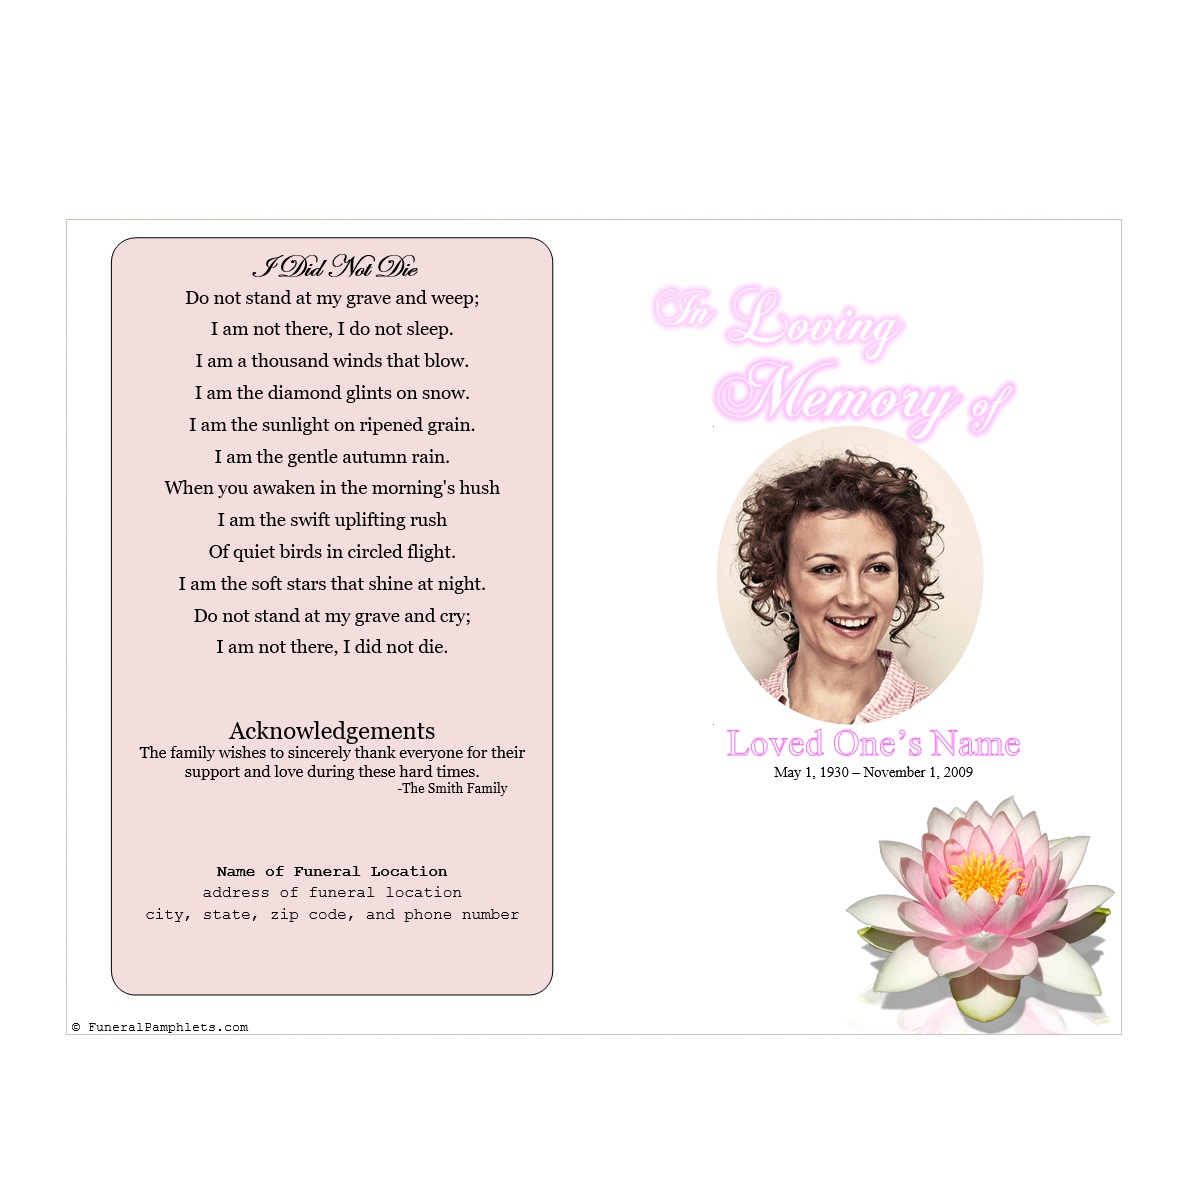 Lily single fold memorial program funeral pamphlets for Memorial pamphlets free templates